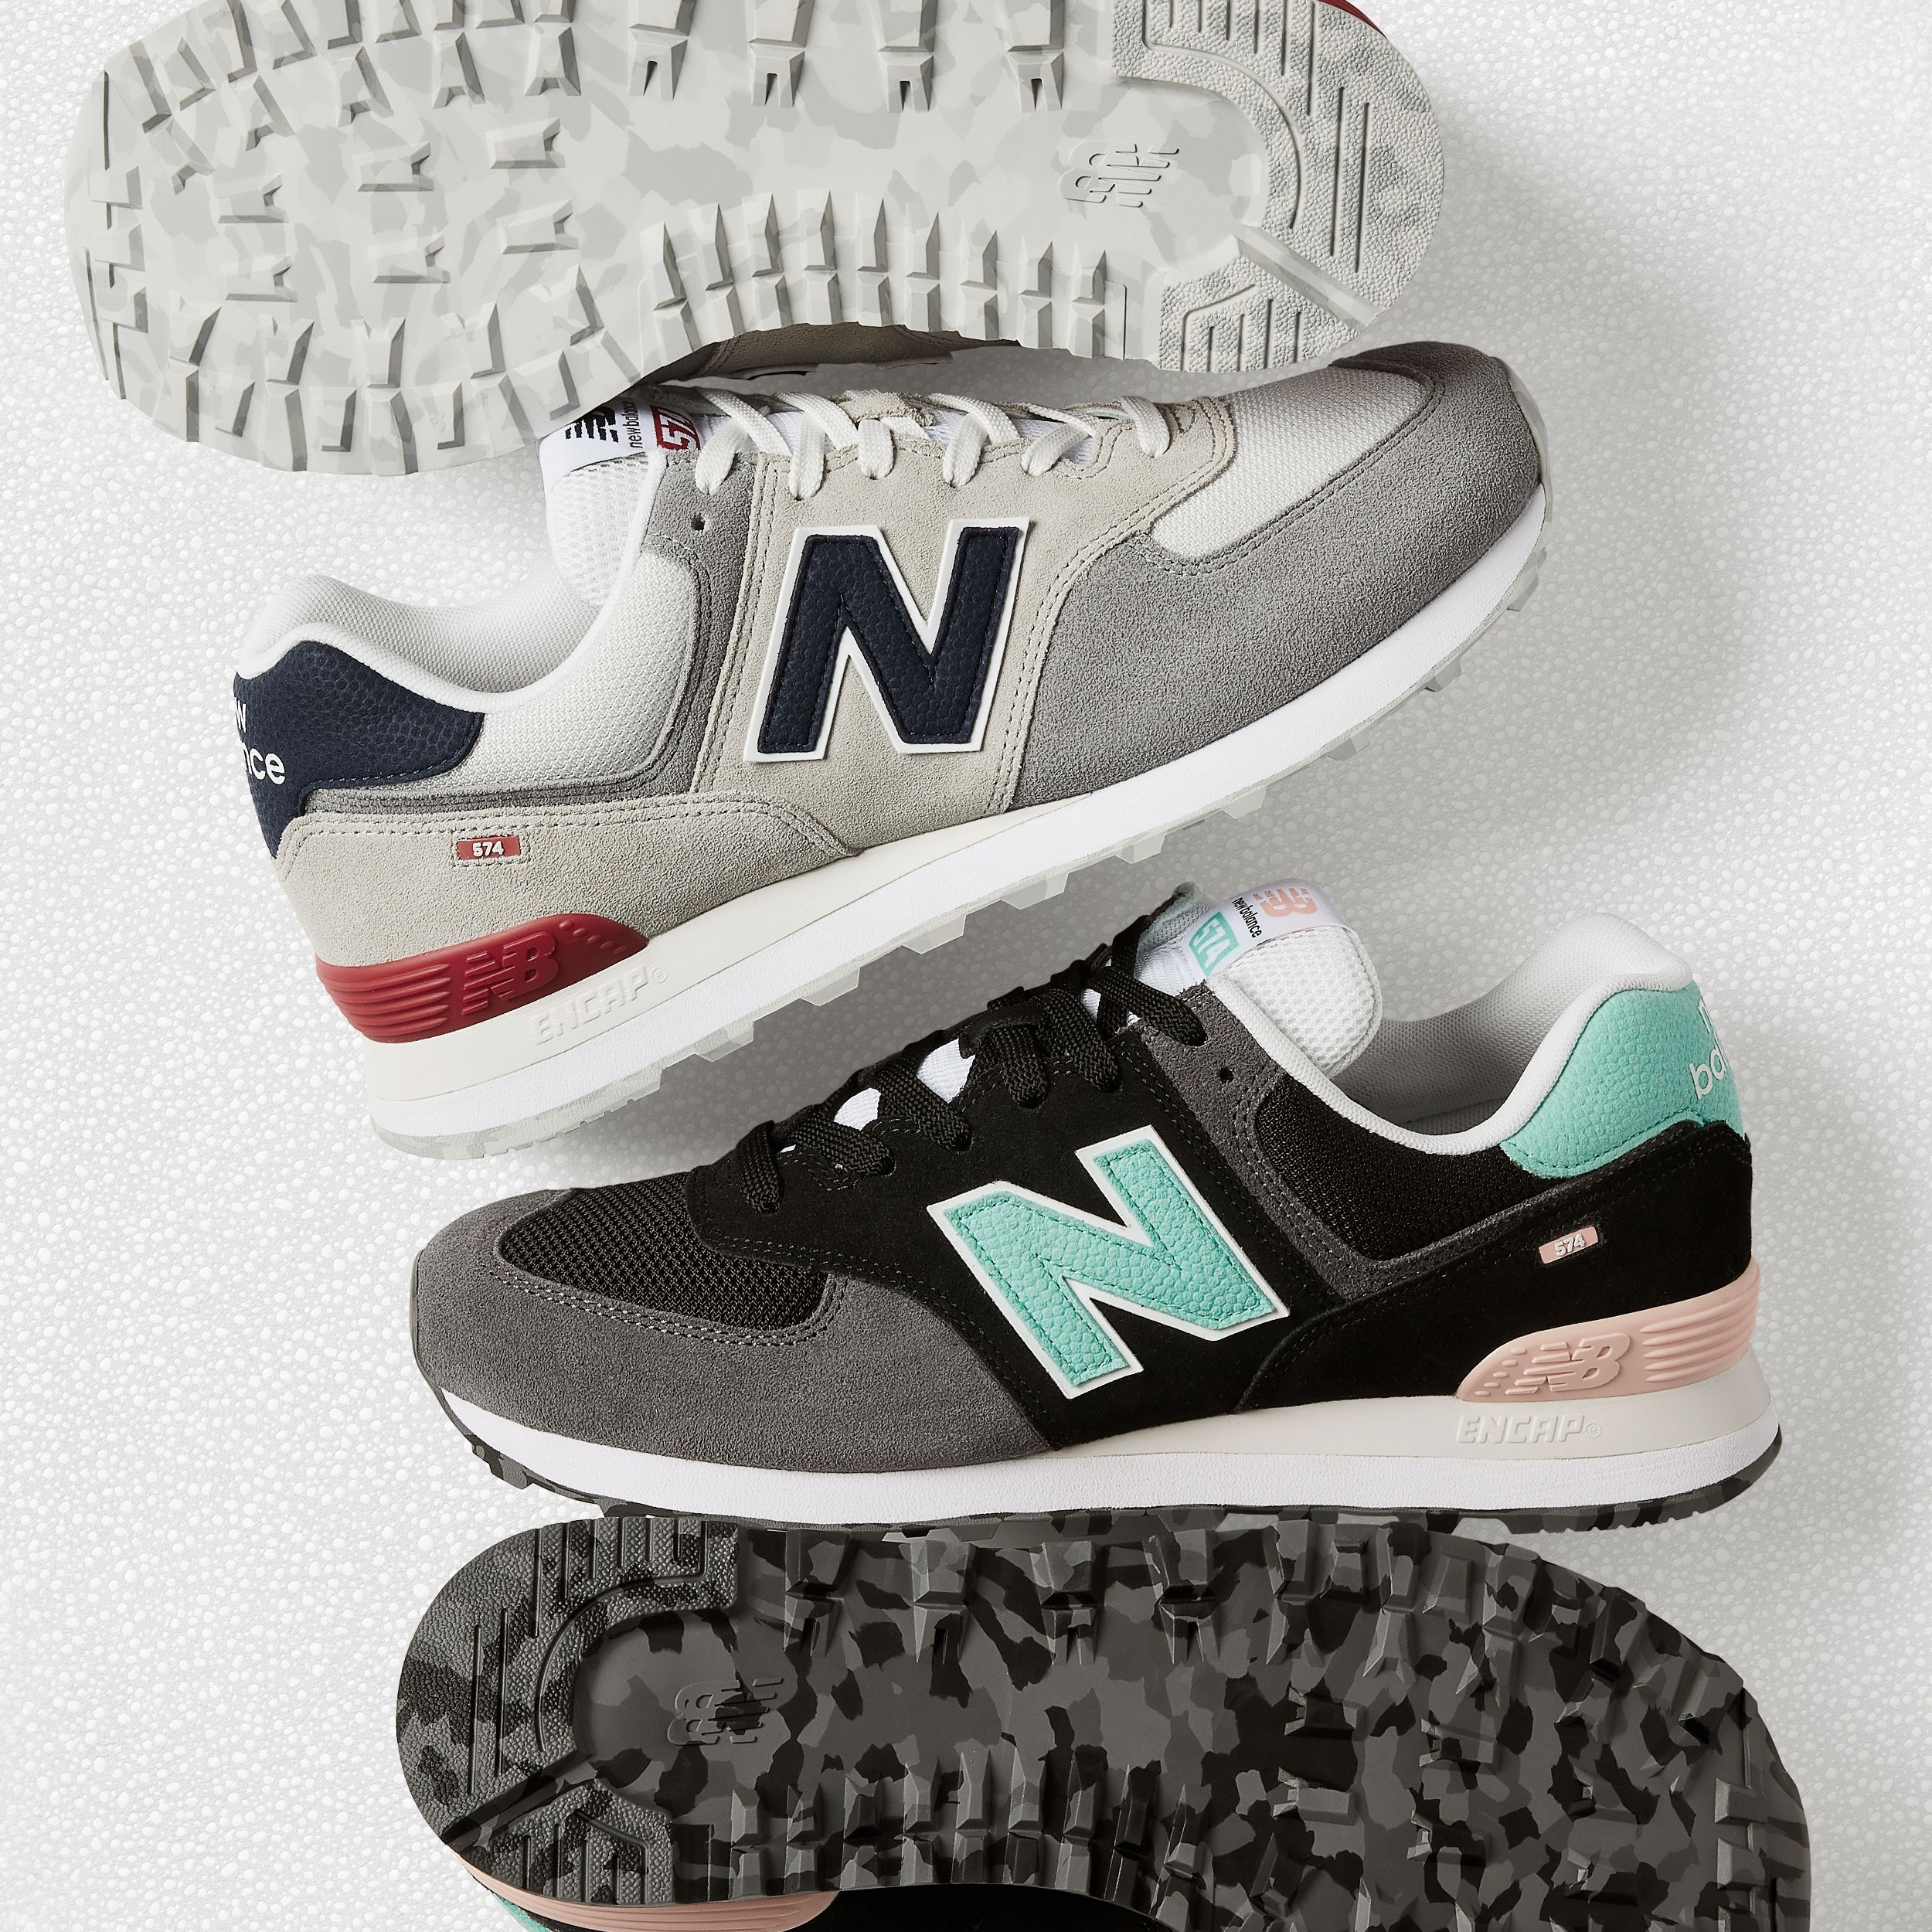 buy popular 32e2a 48b05 The premium materials and craftsmanship you expect from New Balance come  together to create this subtle textural twist on ...